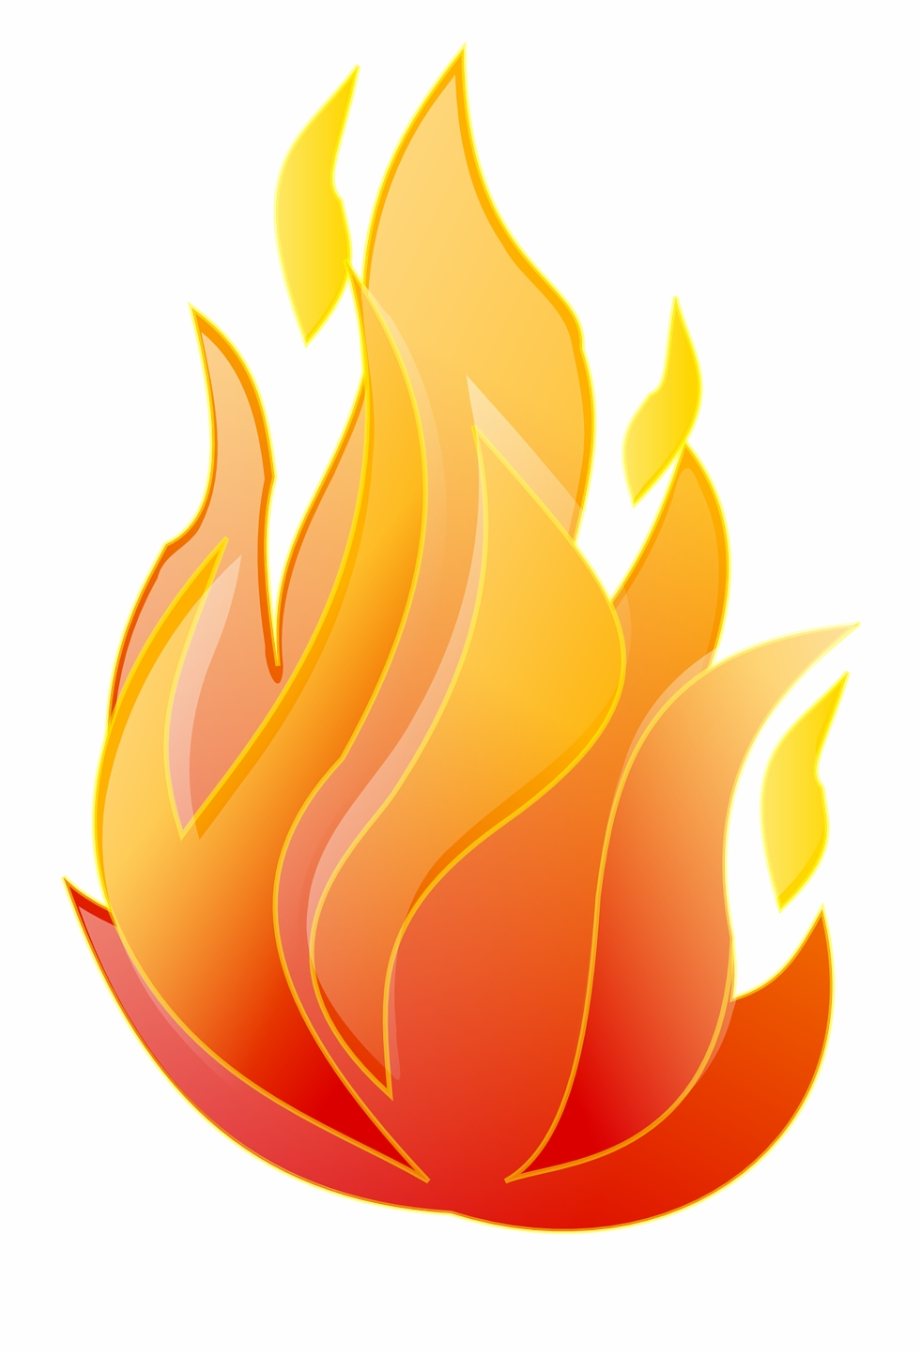 Animated Fire Png Transparent Background.